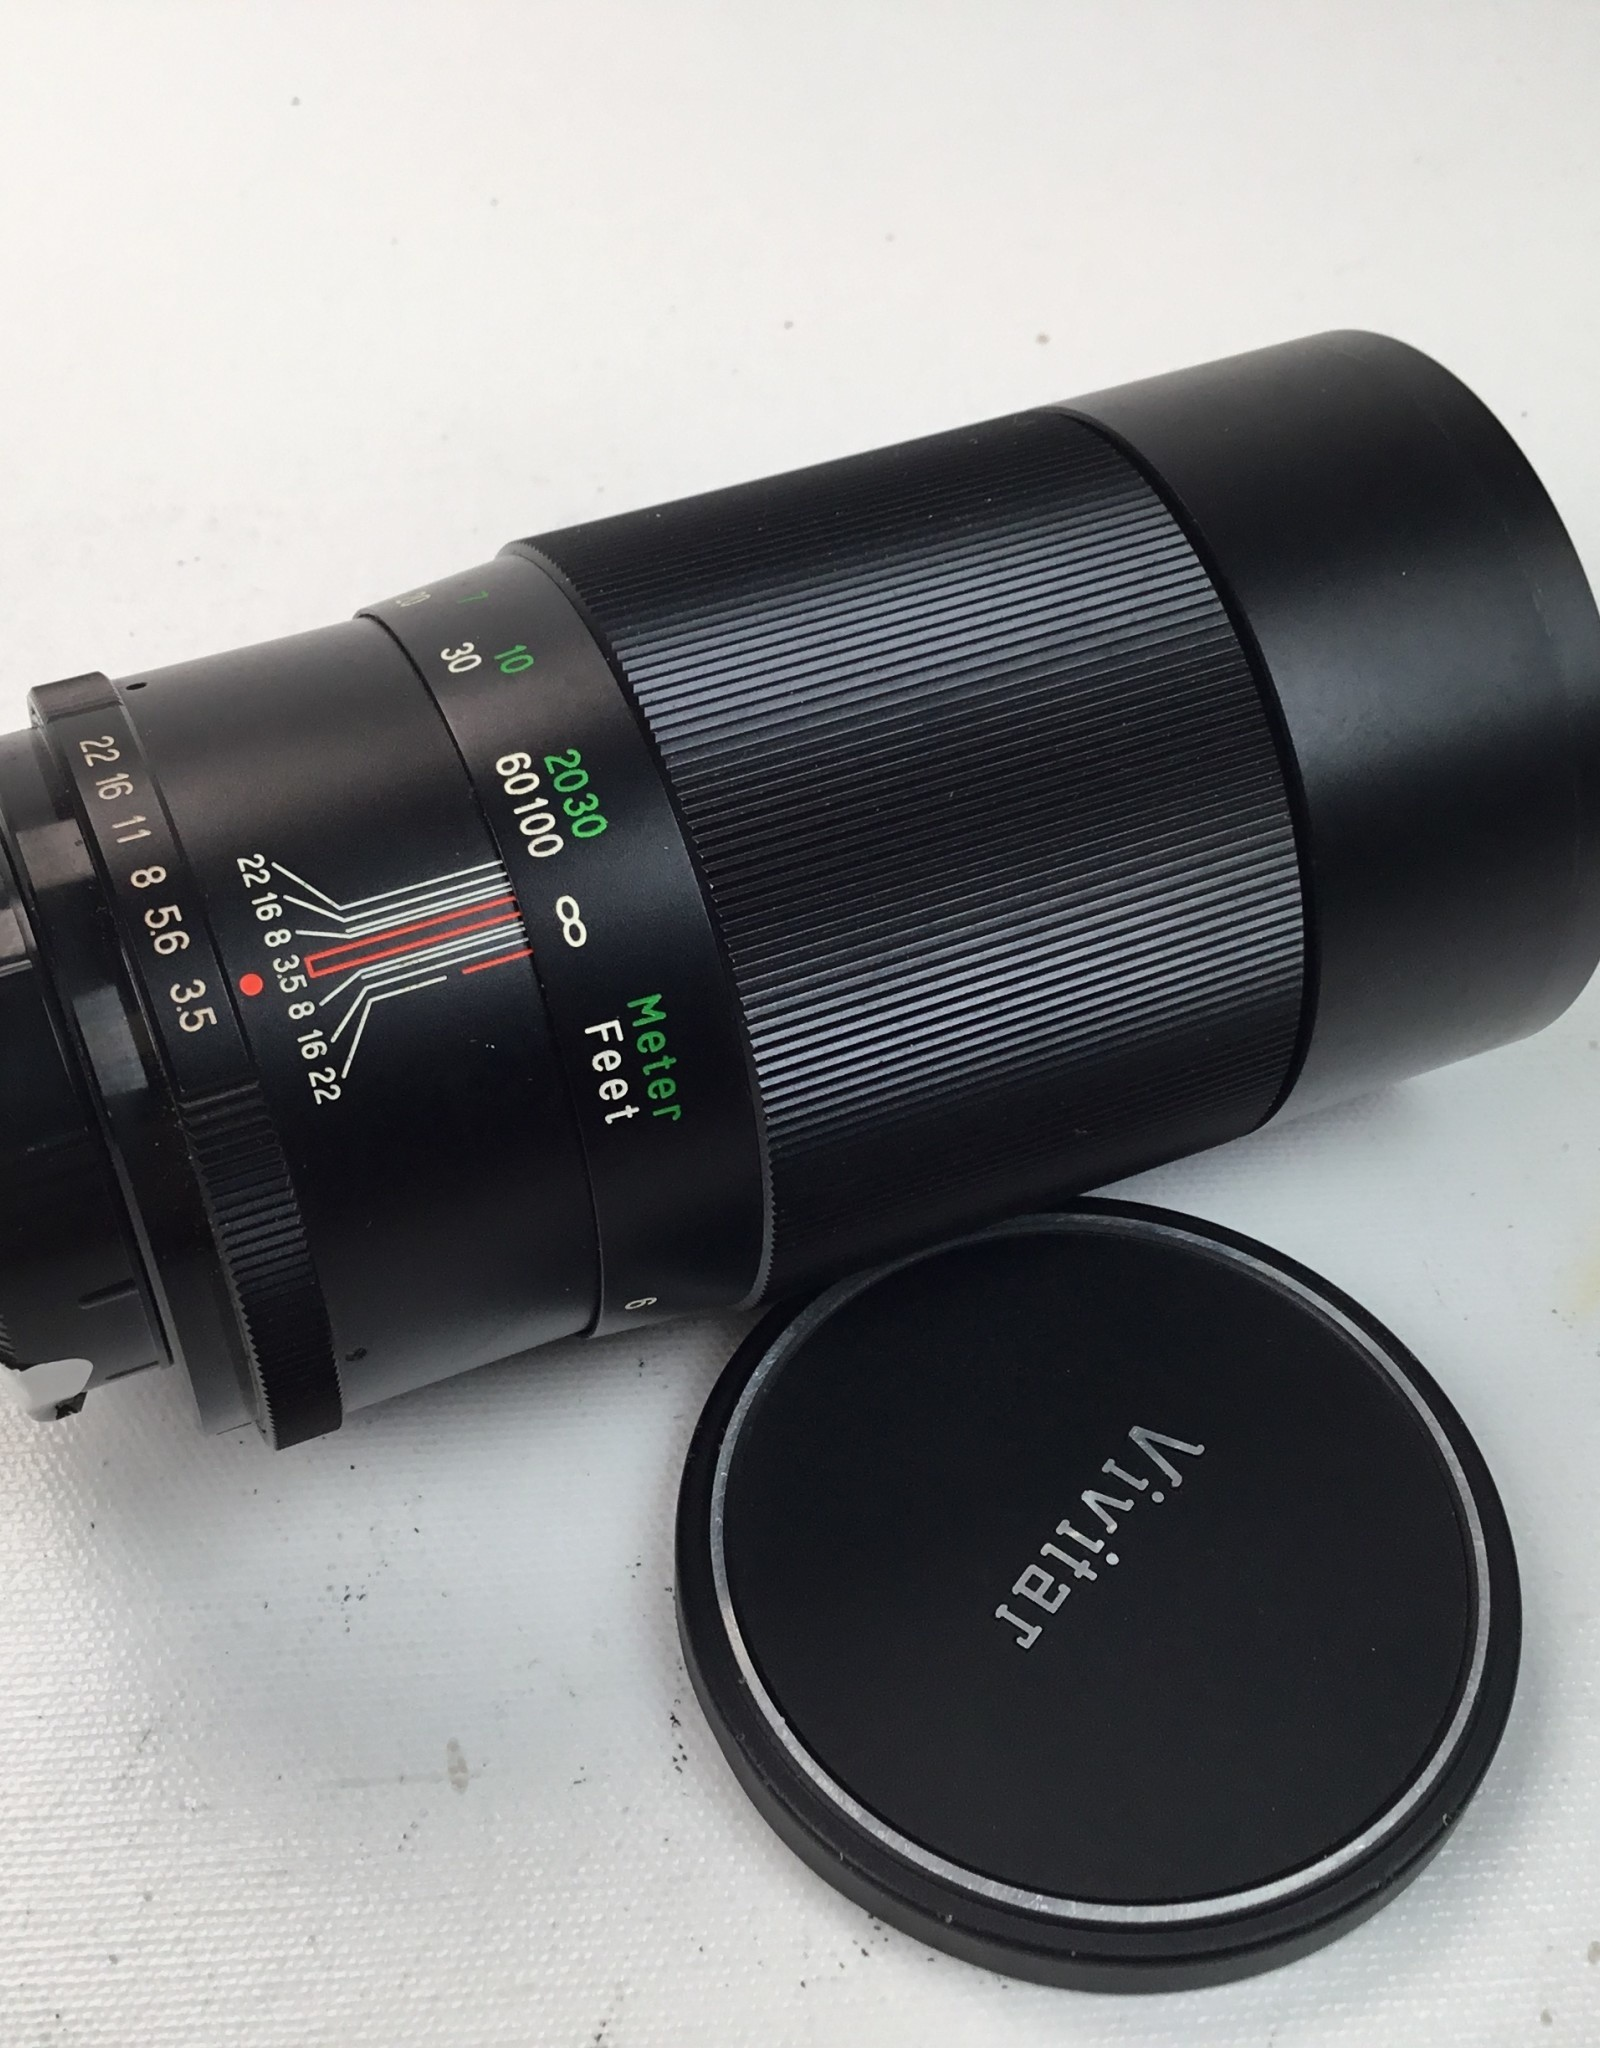 Vivitar 200mm f3.5 Screw Mount Lens Used EX-